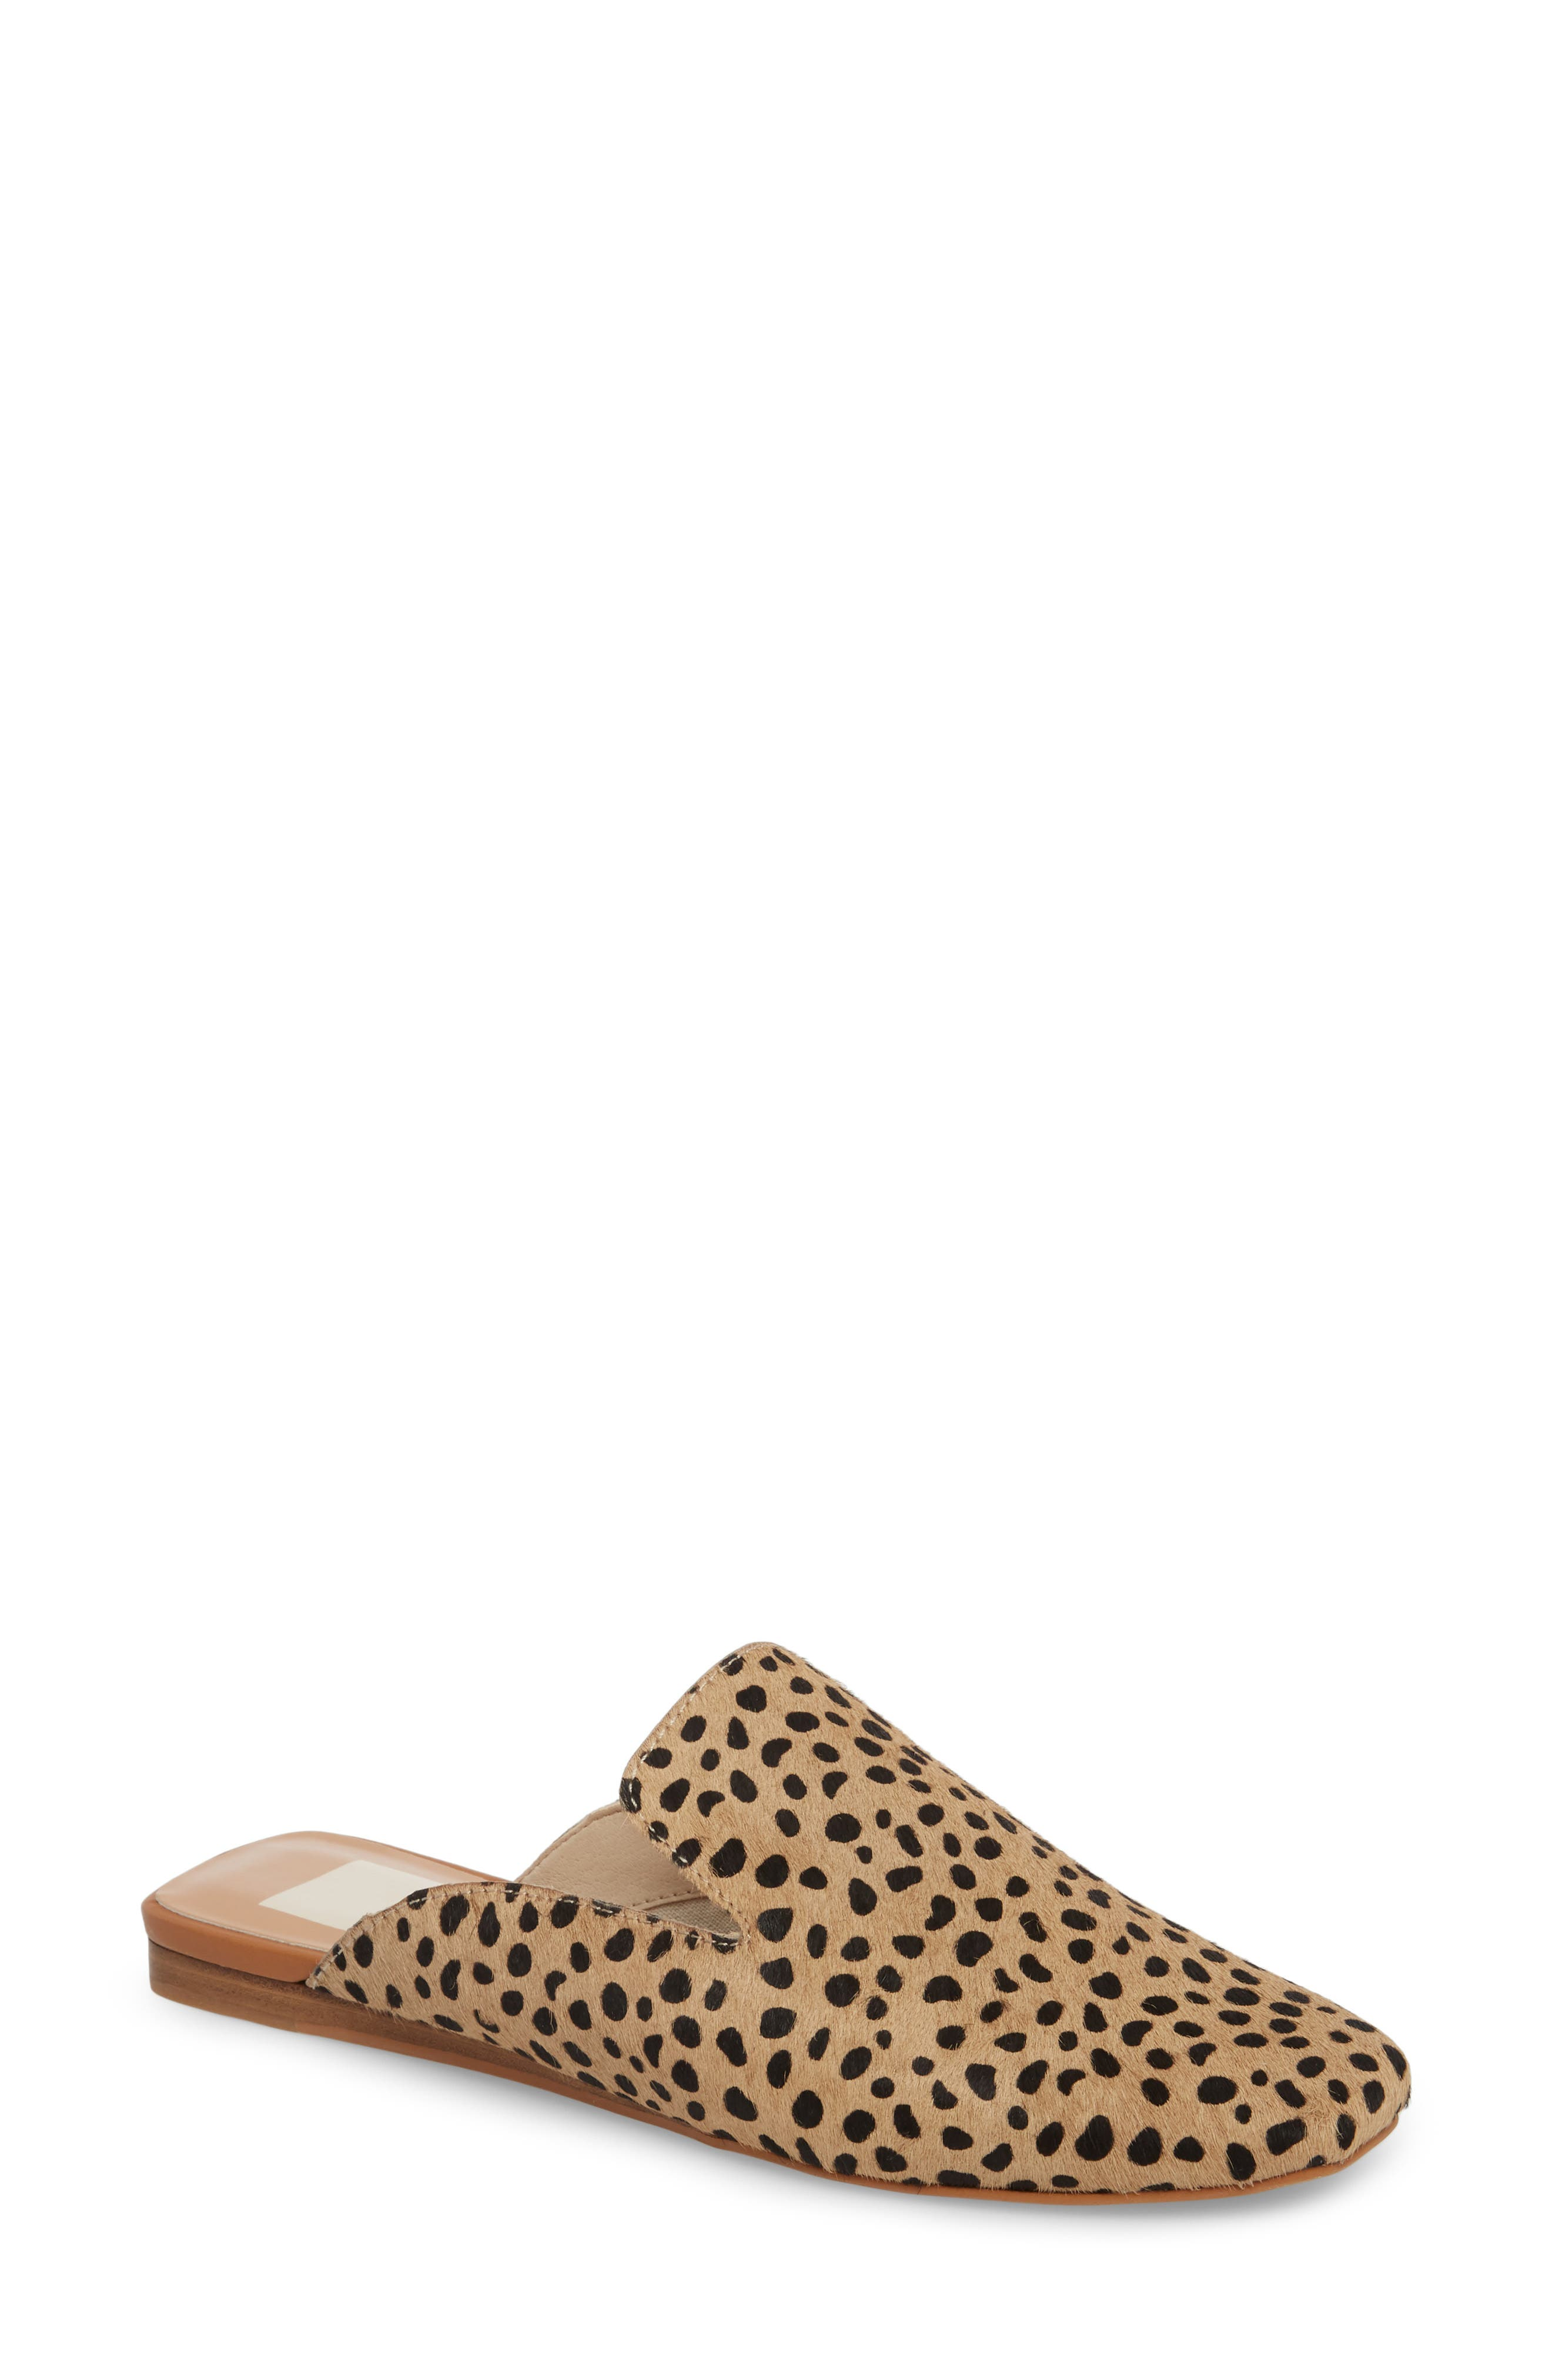 Brie Flat Mule,                             Main thumbnail 1, color,                             LEOPARD CALF HAIR